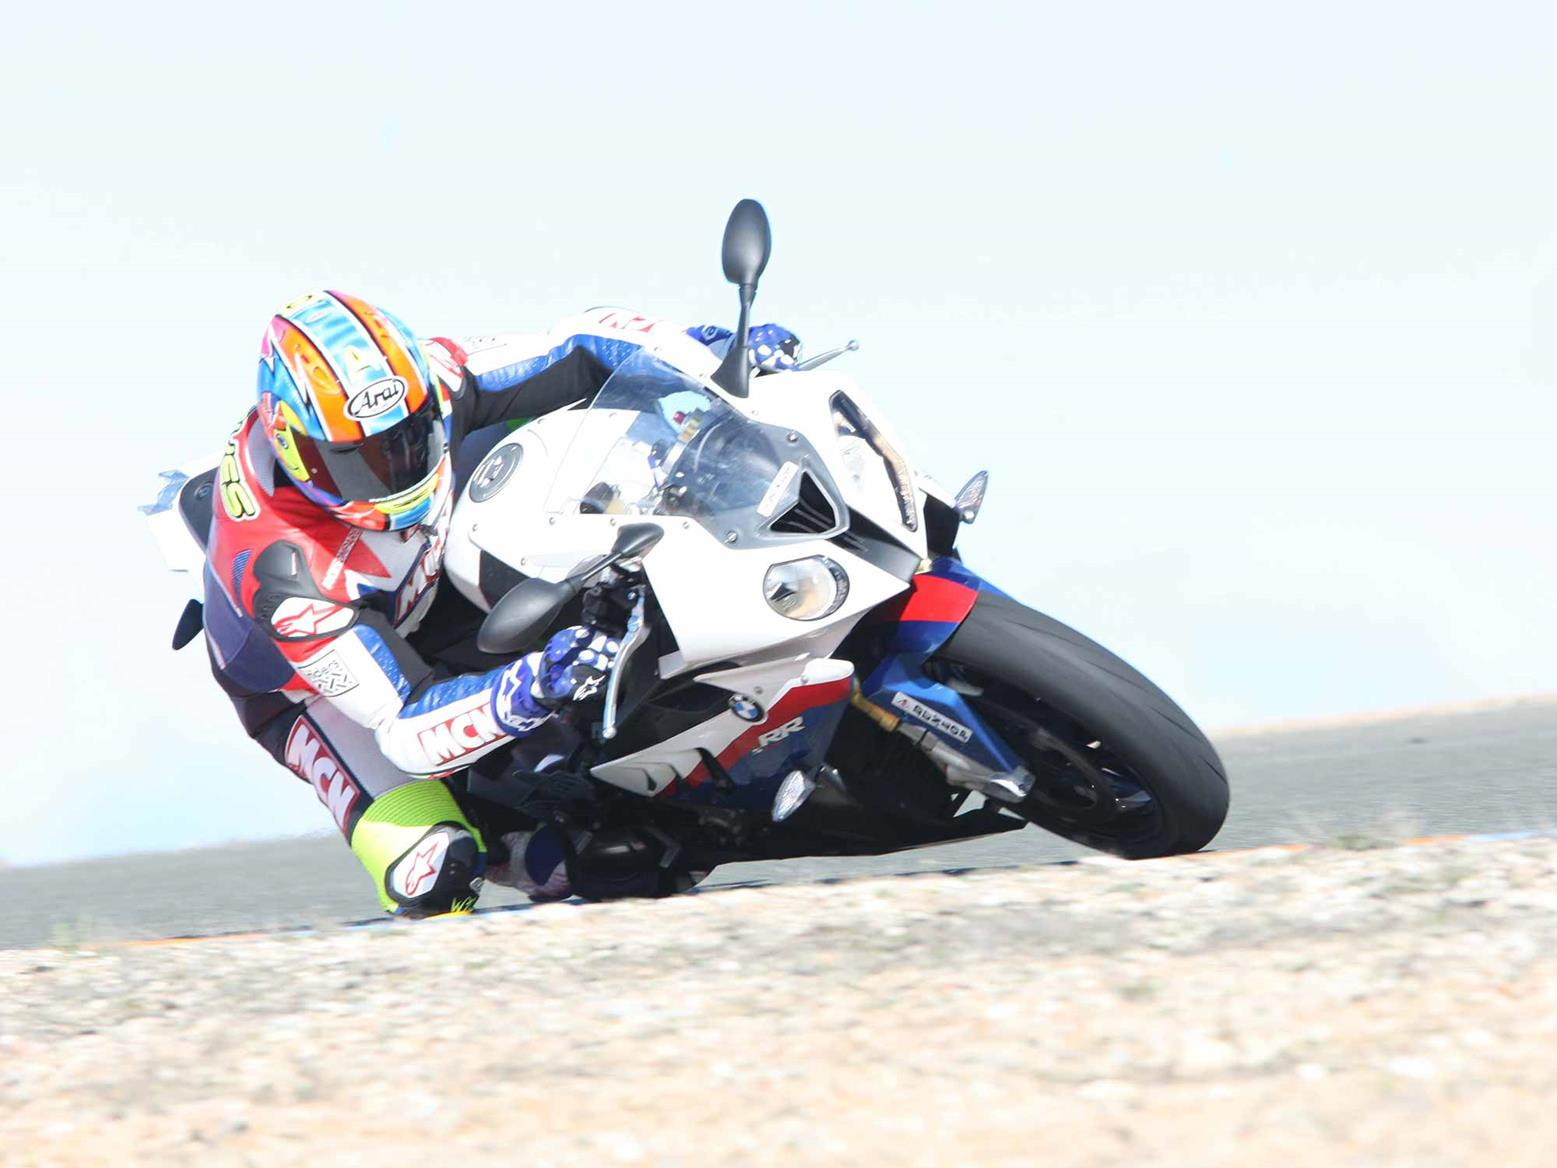 Cornering on the 2010 BMW S1000RR